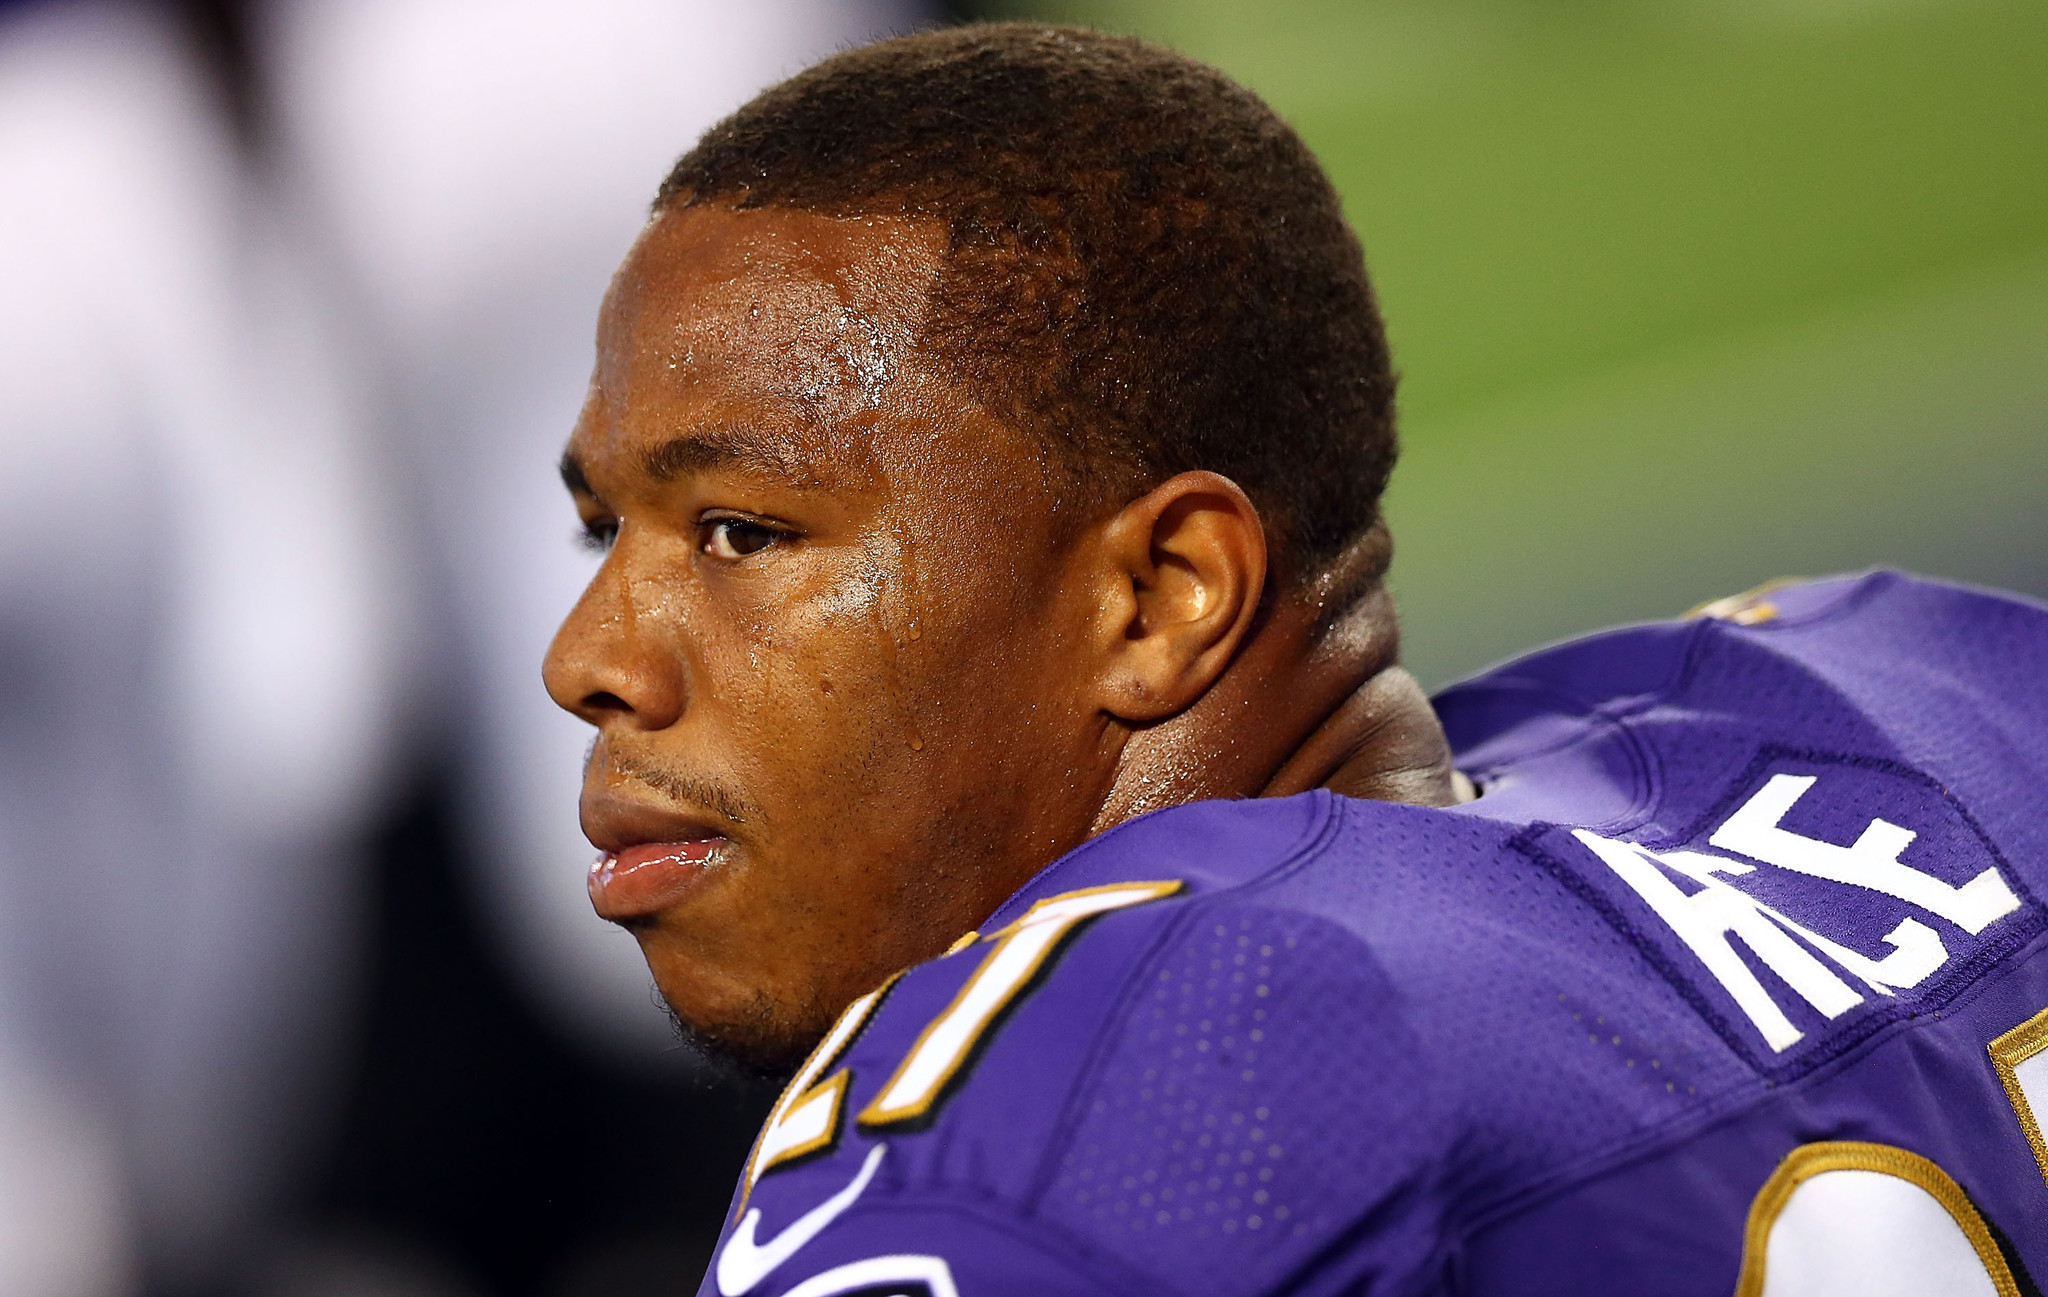 Report: Bills have talked about Ray Rice